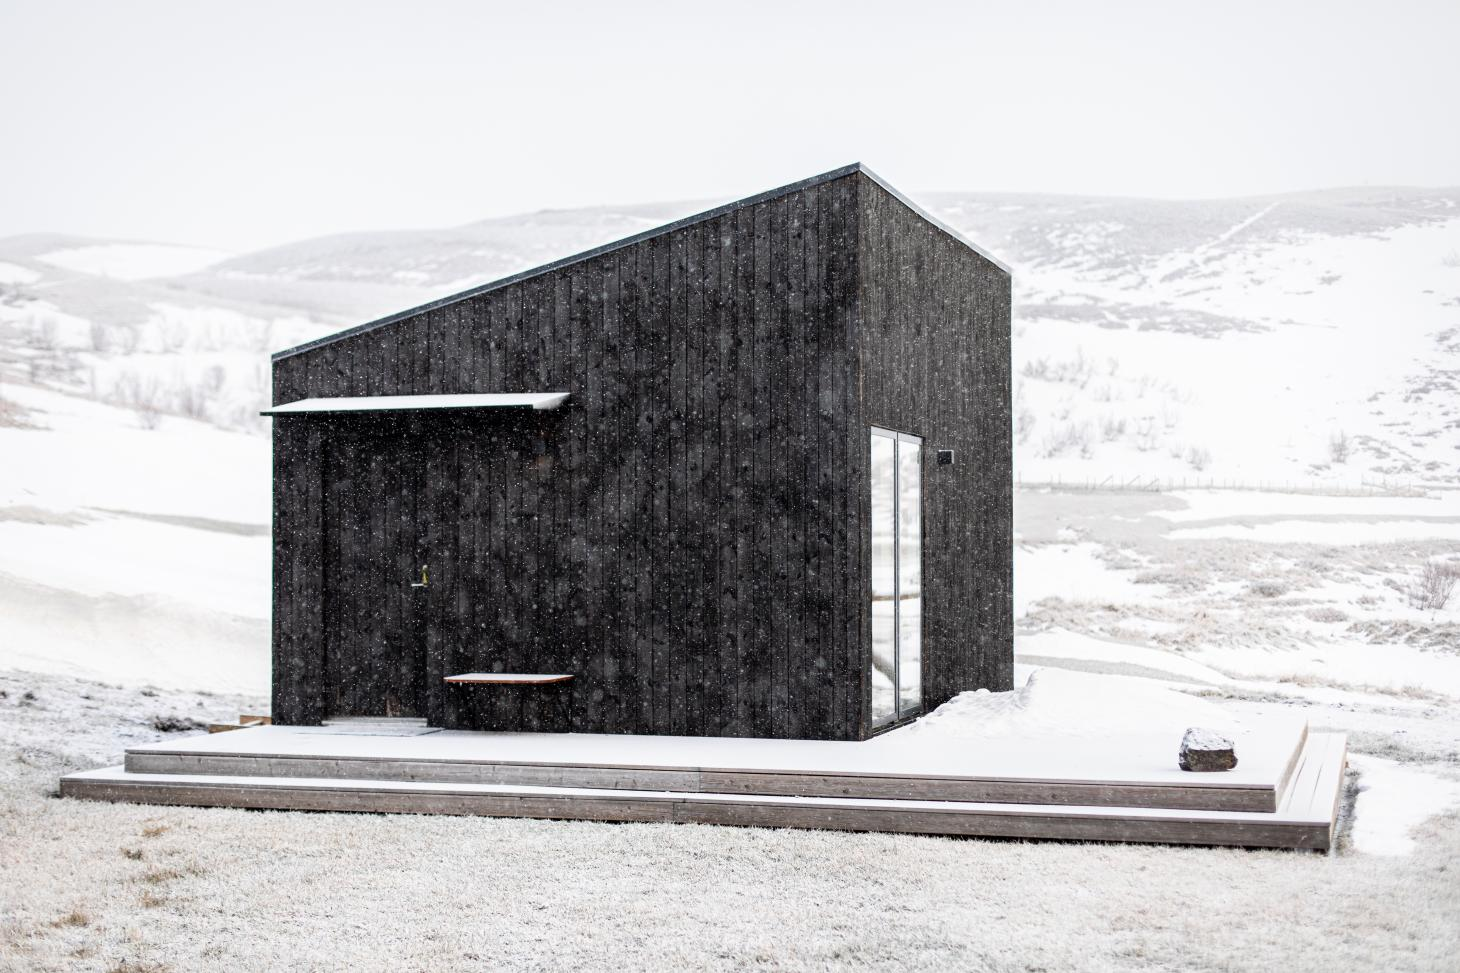 aska is a wooden, sustainable cabin in Iceland